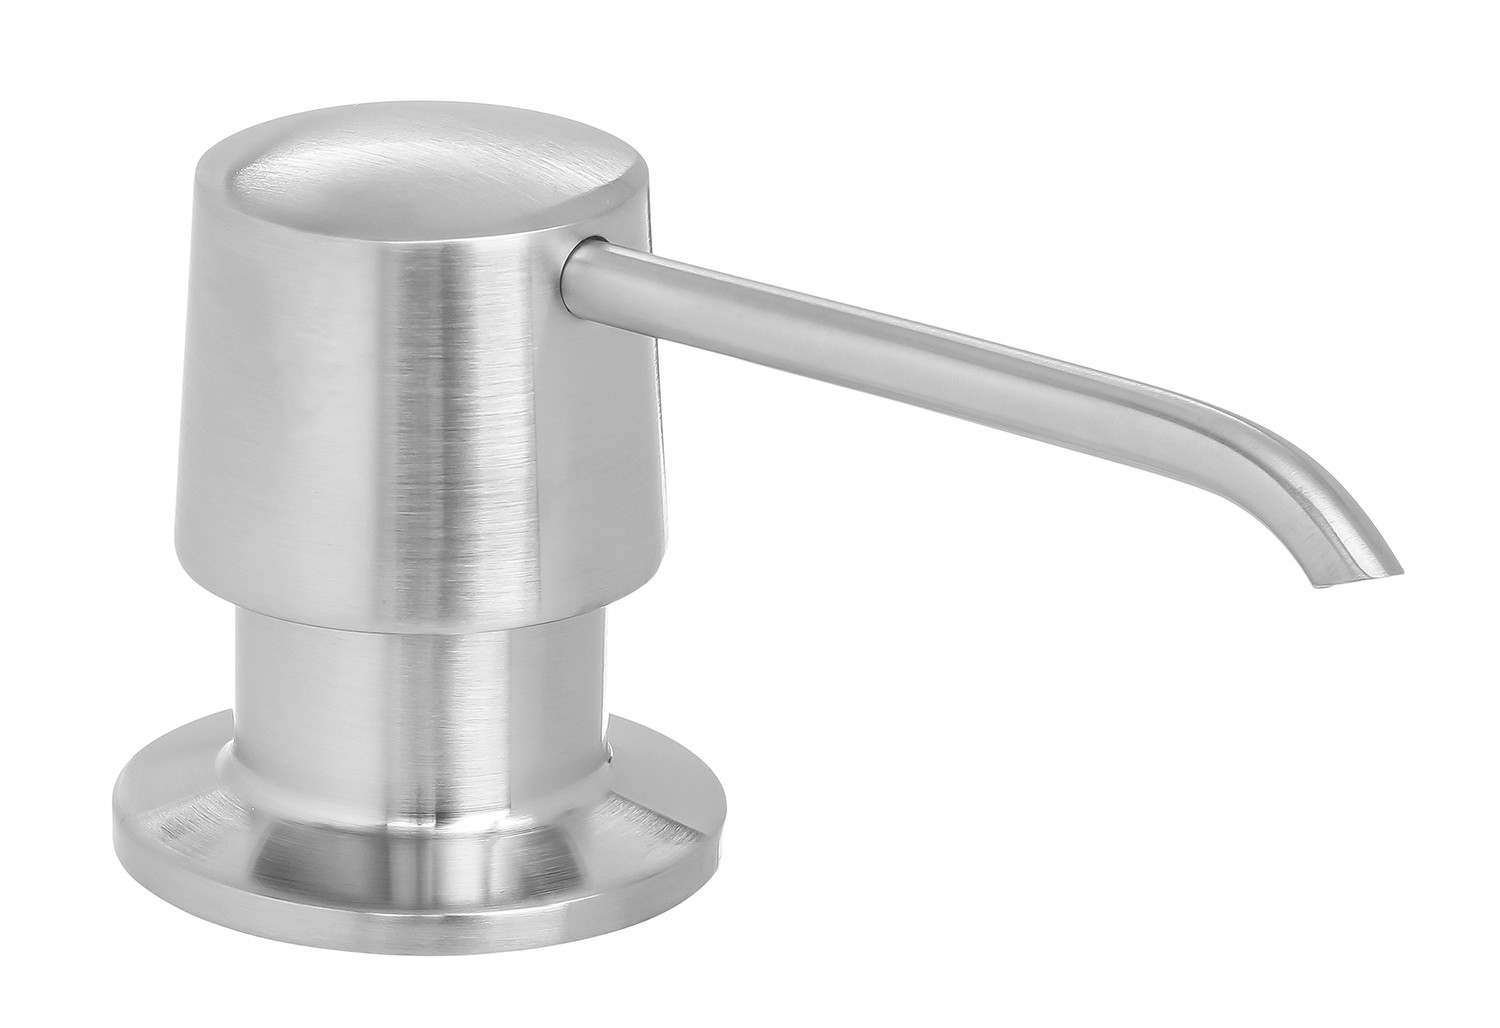 Metal Soap Dispenser Pump Round Shape All Metal Construction Deck Countertop Mount